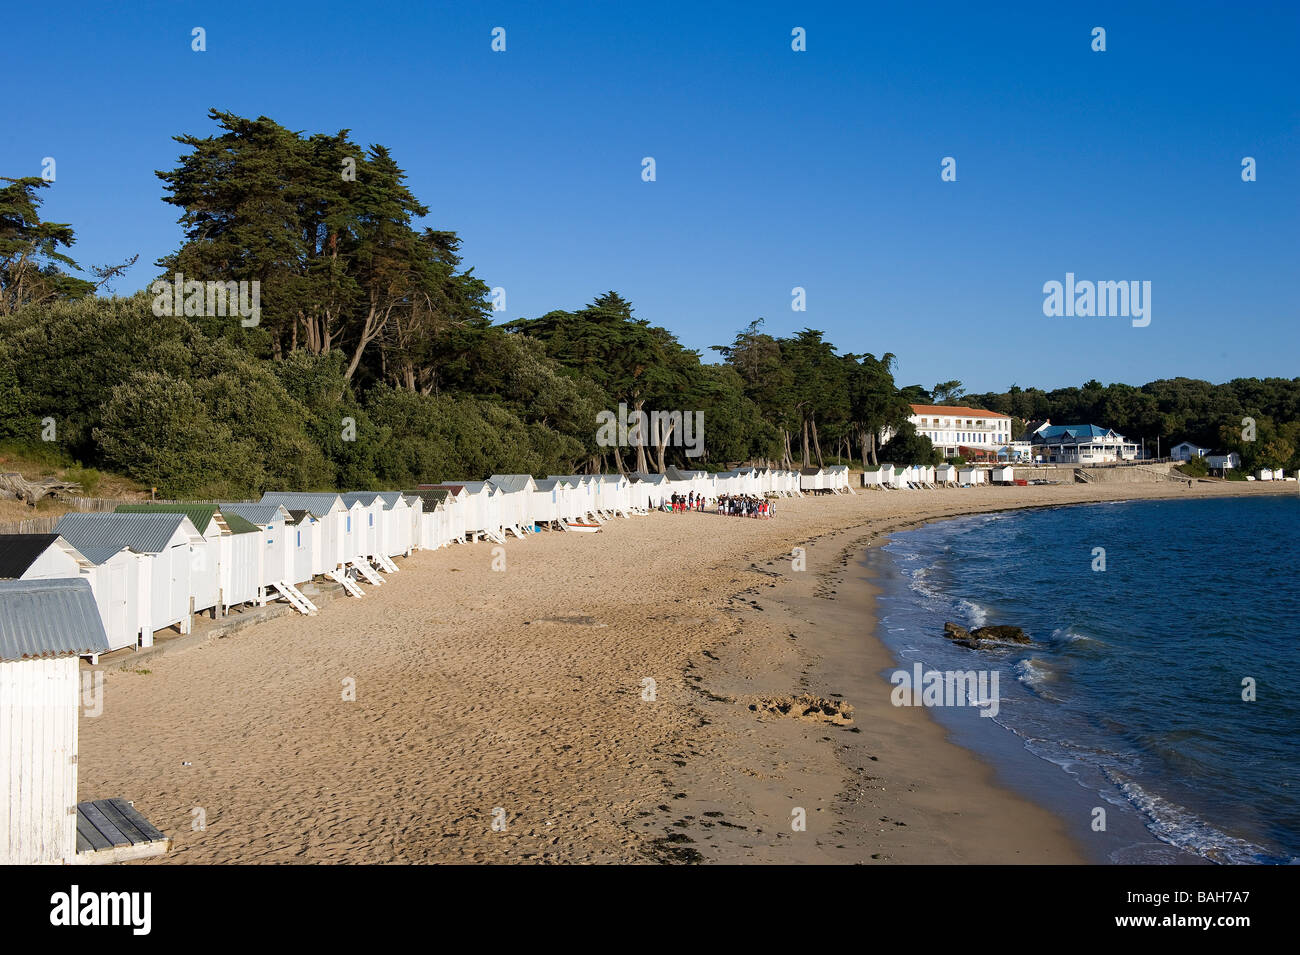 france vendee ile de noirmoutier bois de la chaise la plage des stock photo royalty free. Black Bedroom Furniture Sets. Home Design Ideas